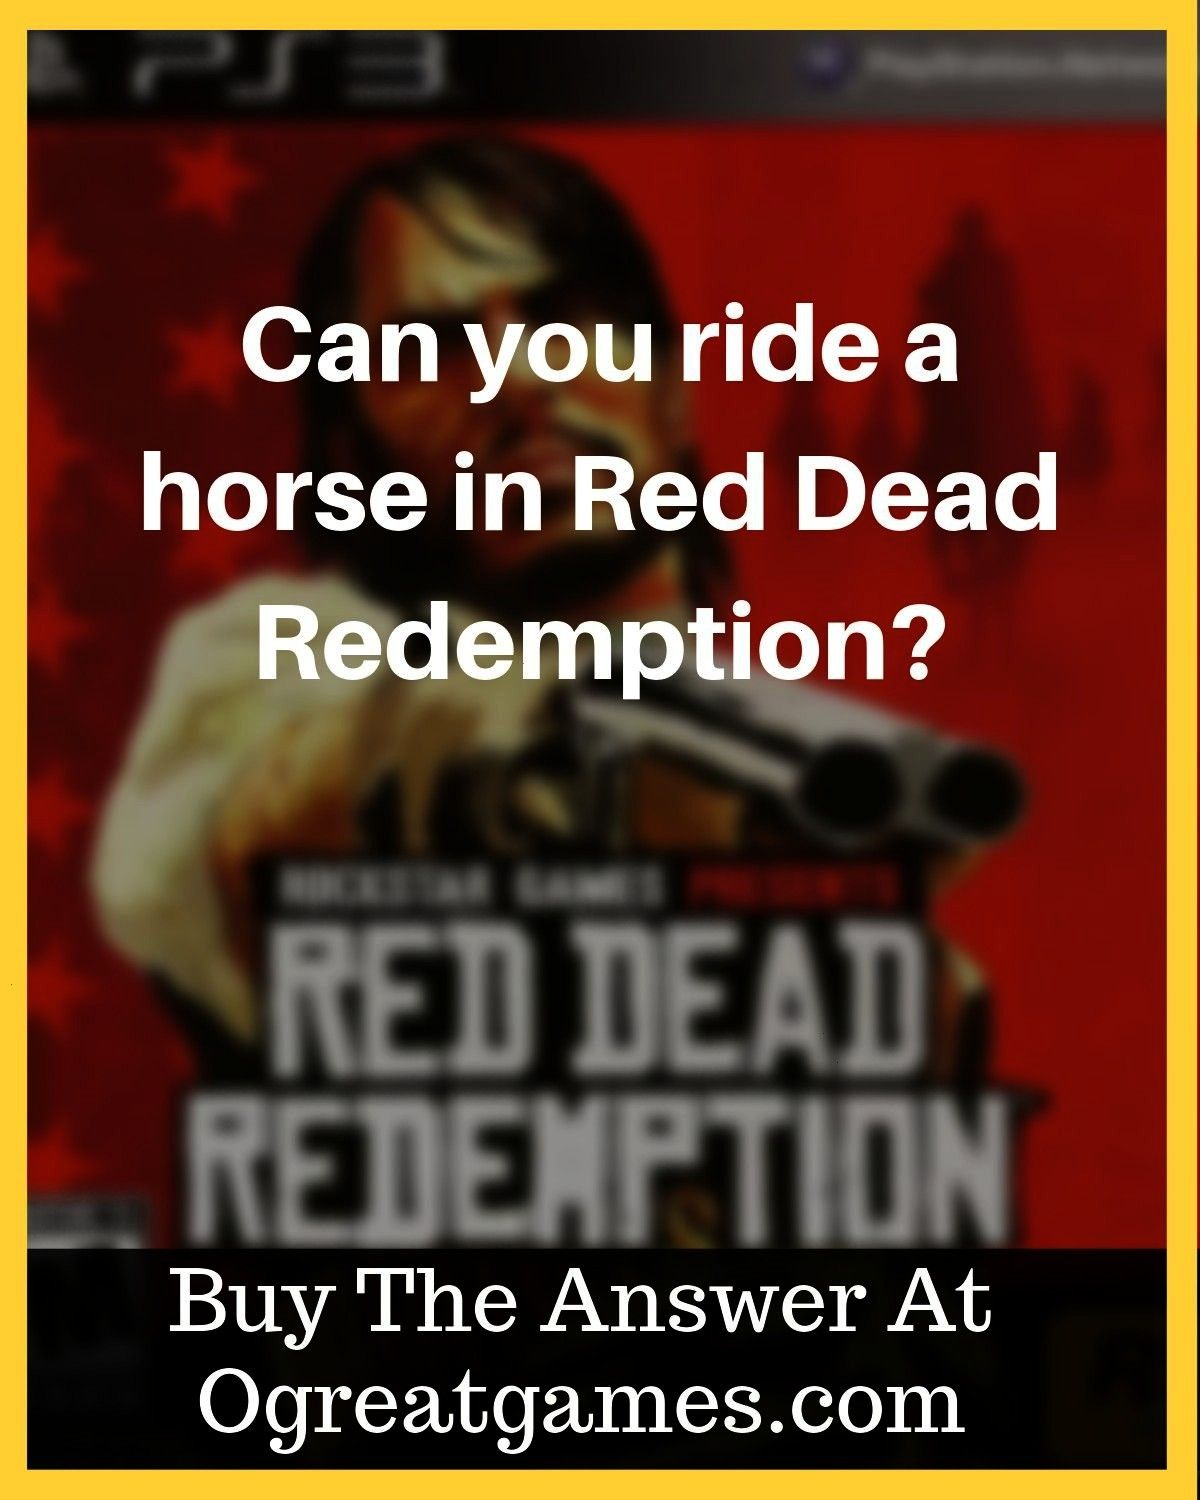 ride a horse in Red Dead Redemption Can you ride a horse in Red Dead Redemption Battle epic Chimeras in the United States as Nathan Hale with the twist and risk of becomi...